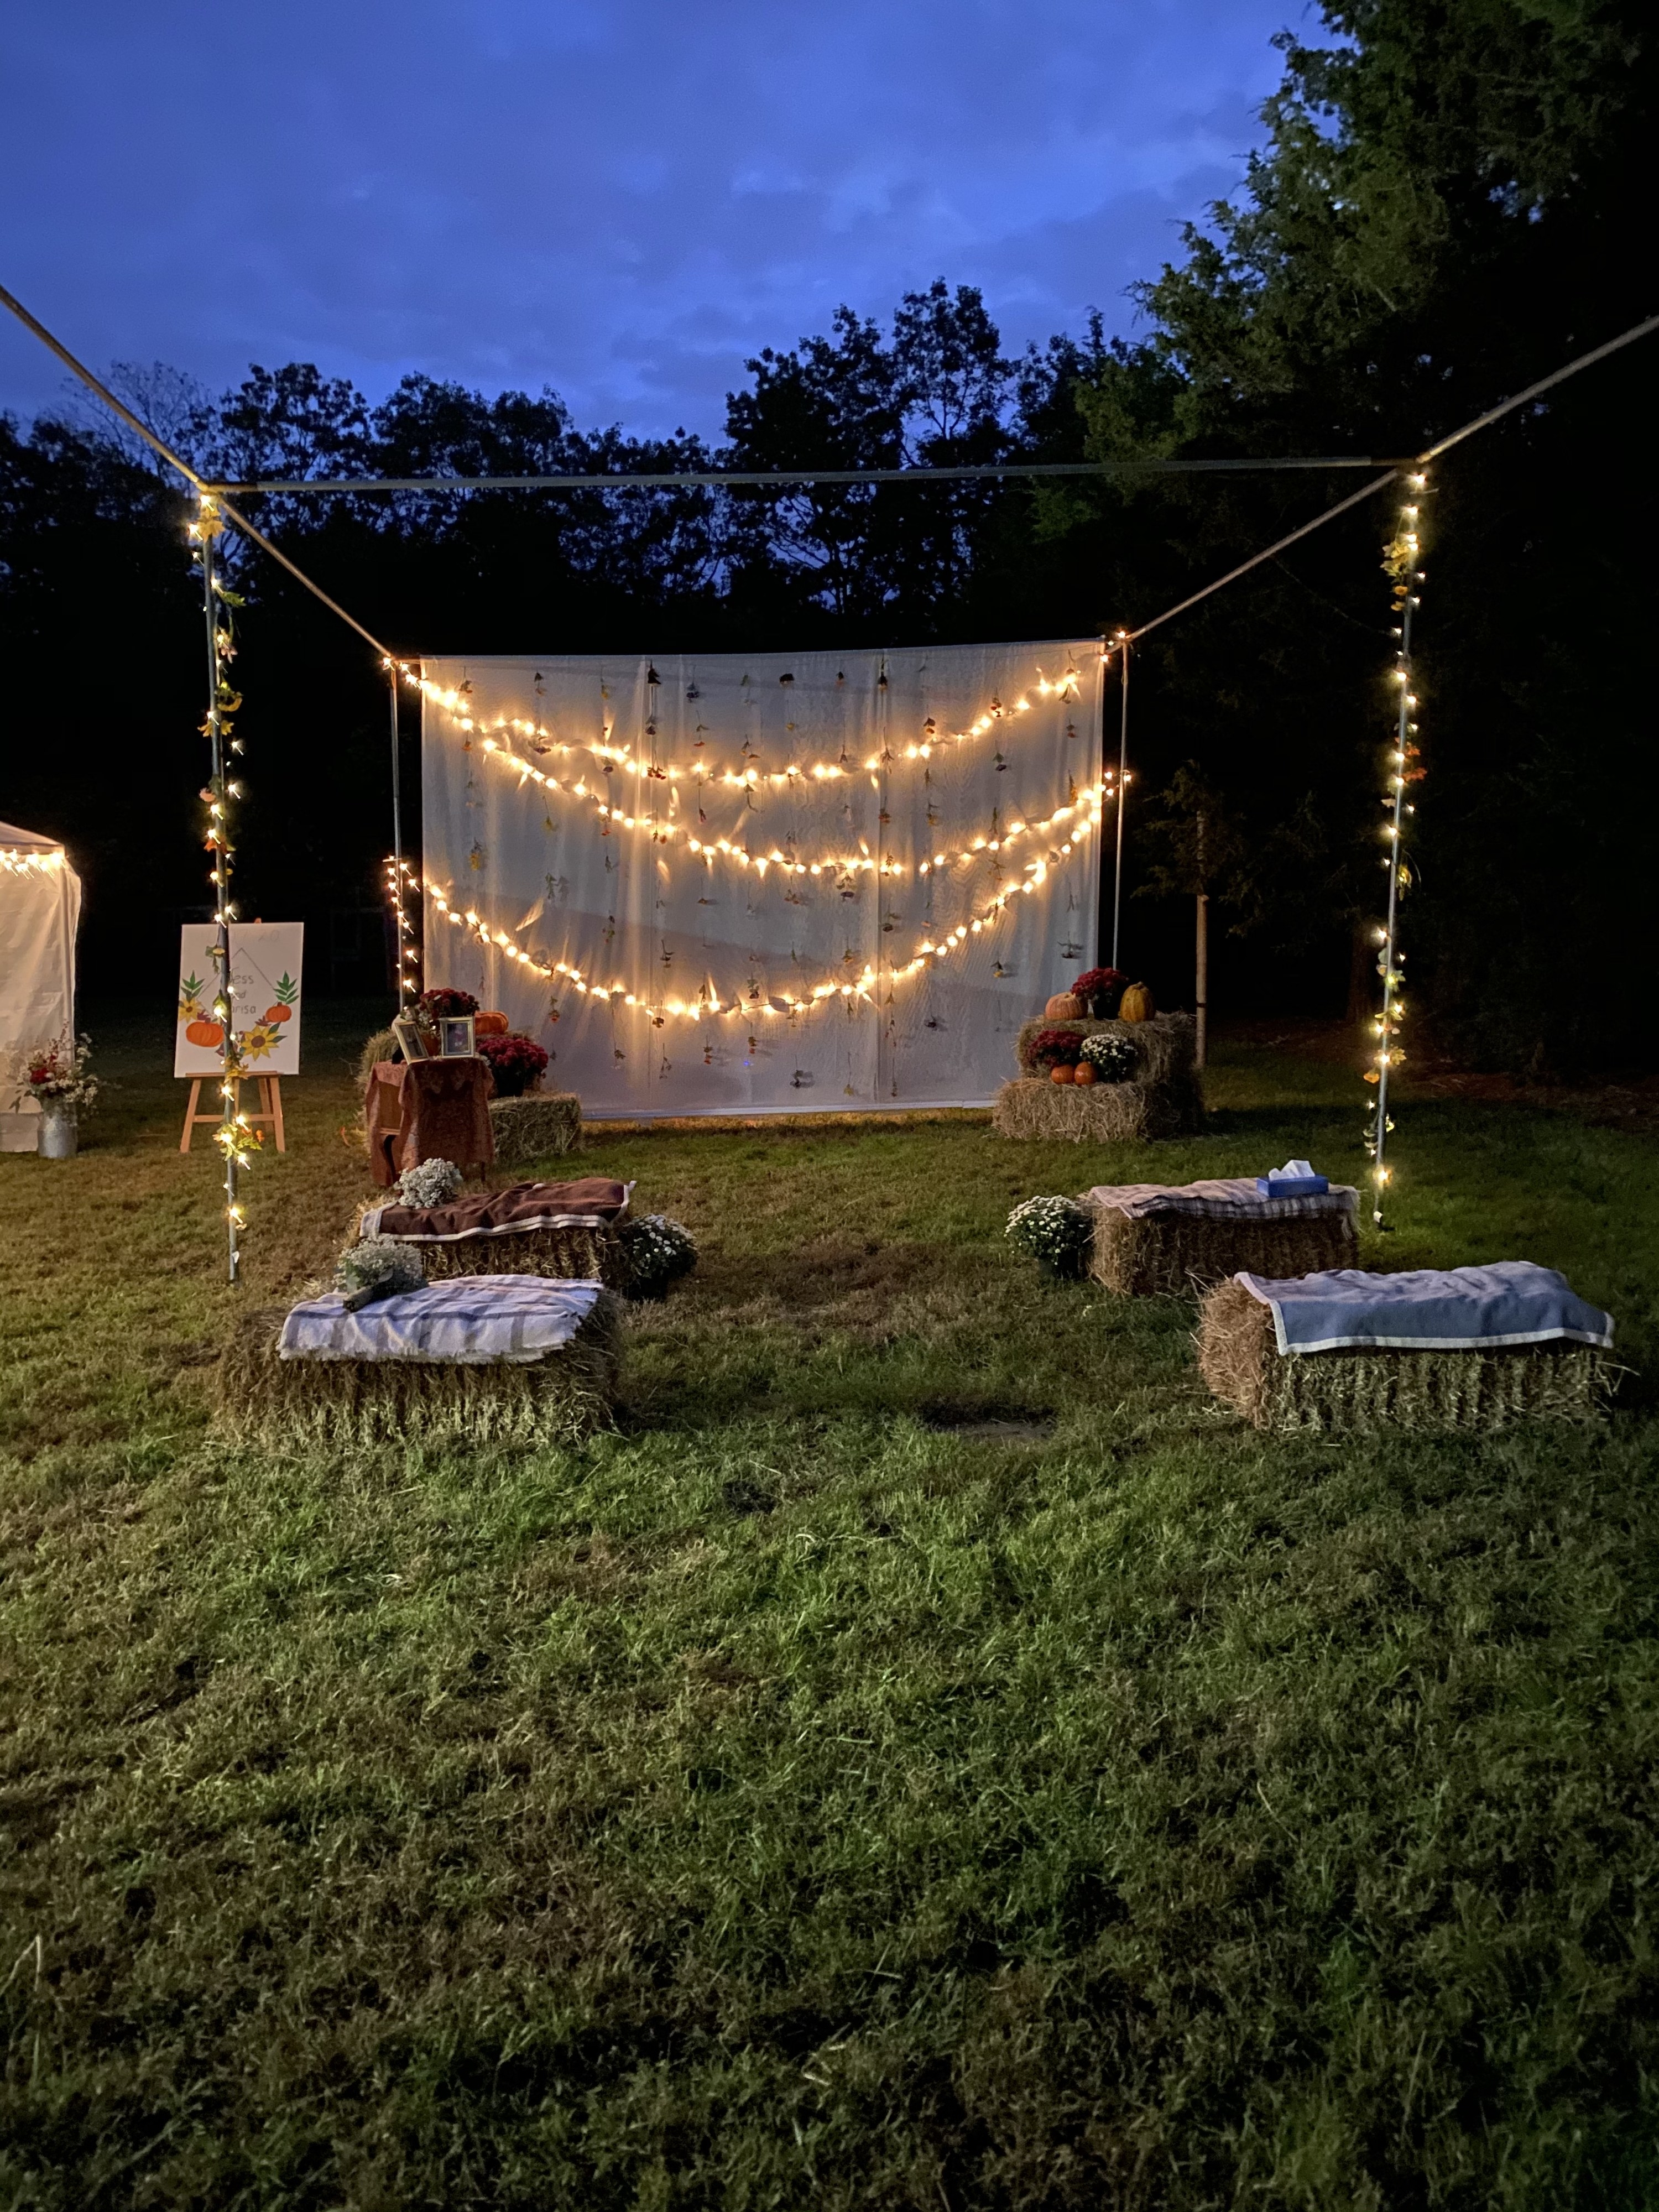 The frame of a batting cage is filled with hay bales with blankets, and decorated with string lights and a white backdrop.